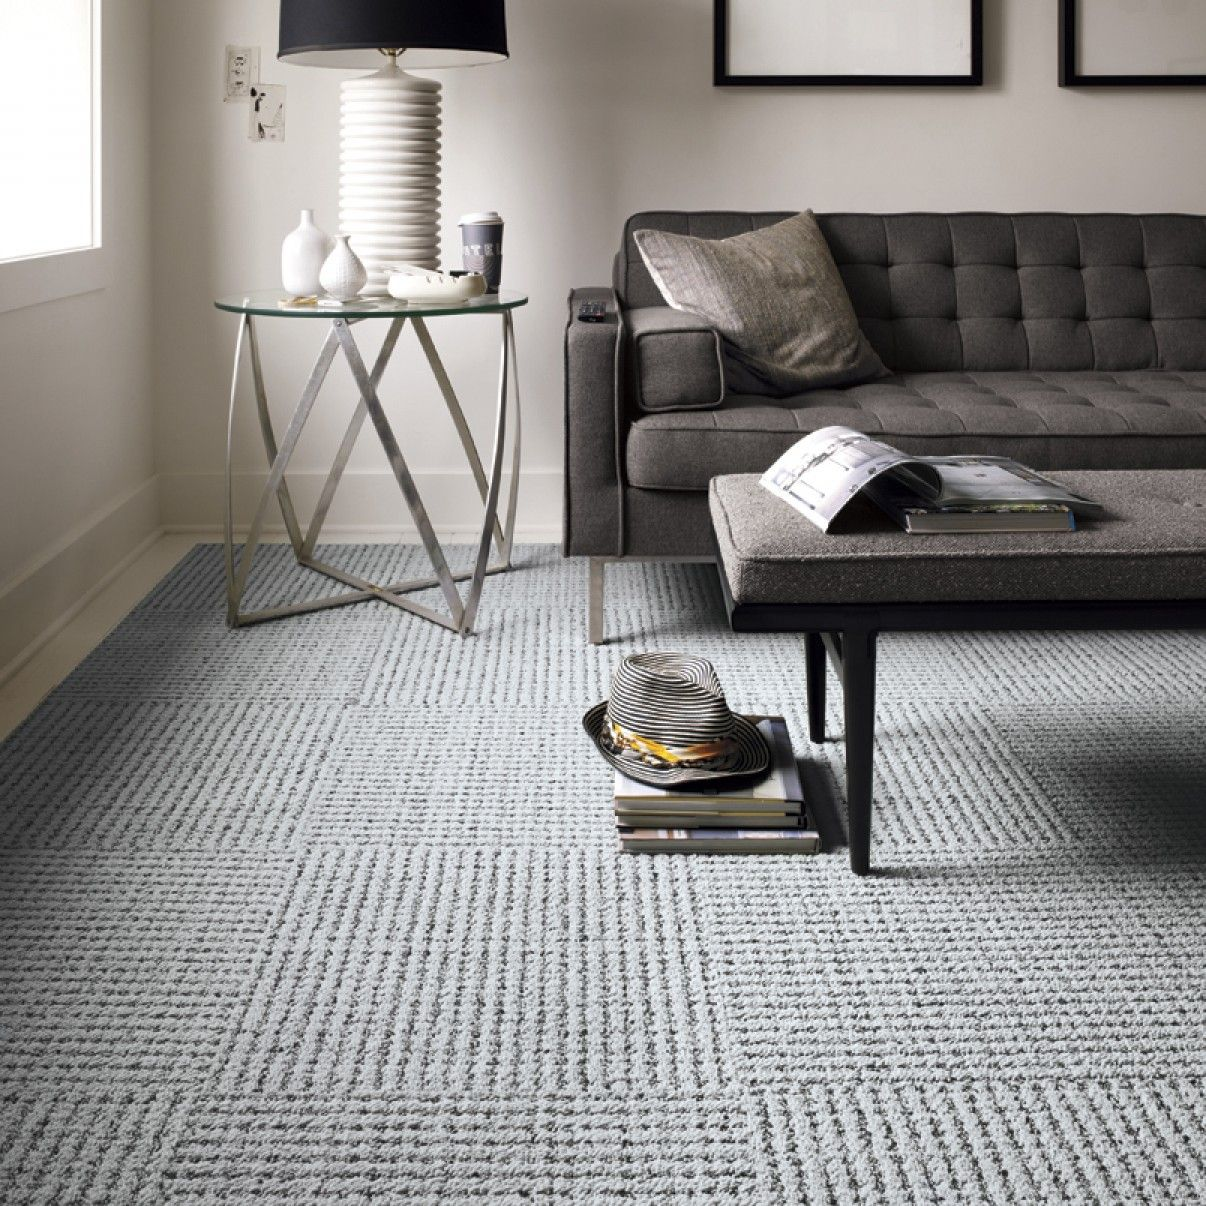 FLOR Carpet Tiles Love This Chunky Gray Pattern For Boysu0027 Room